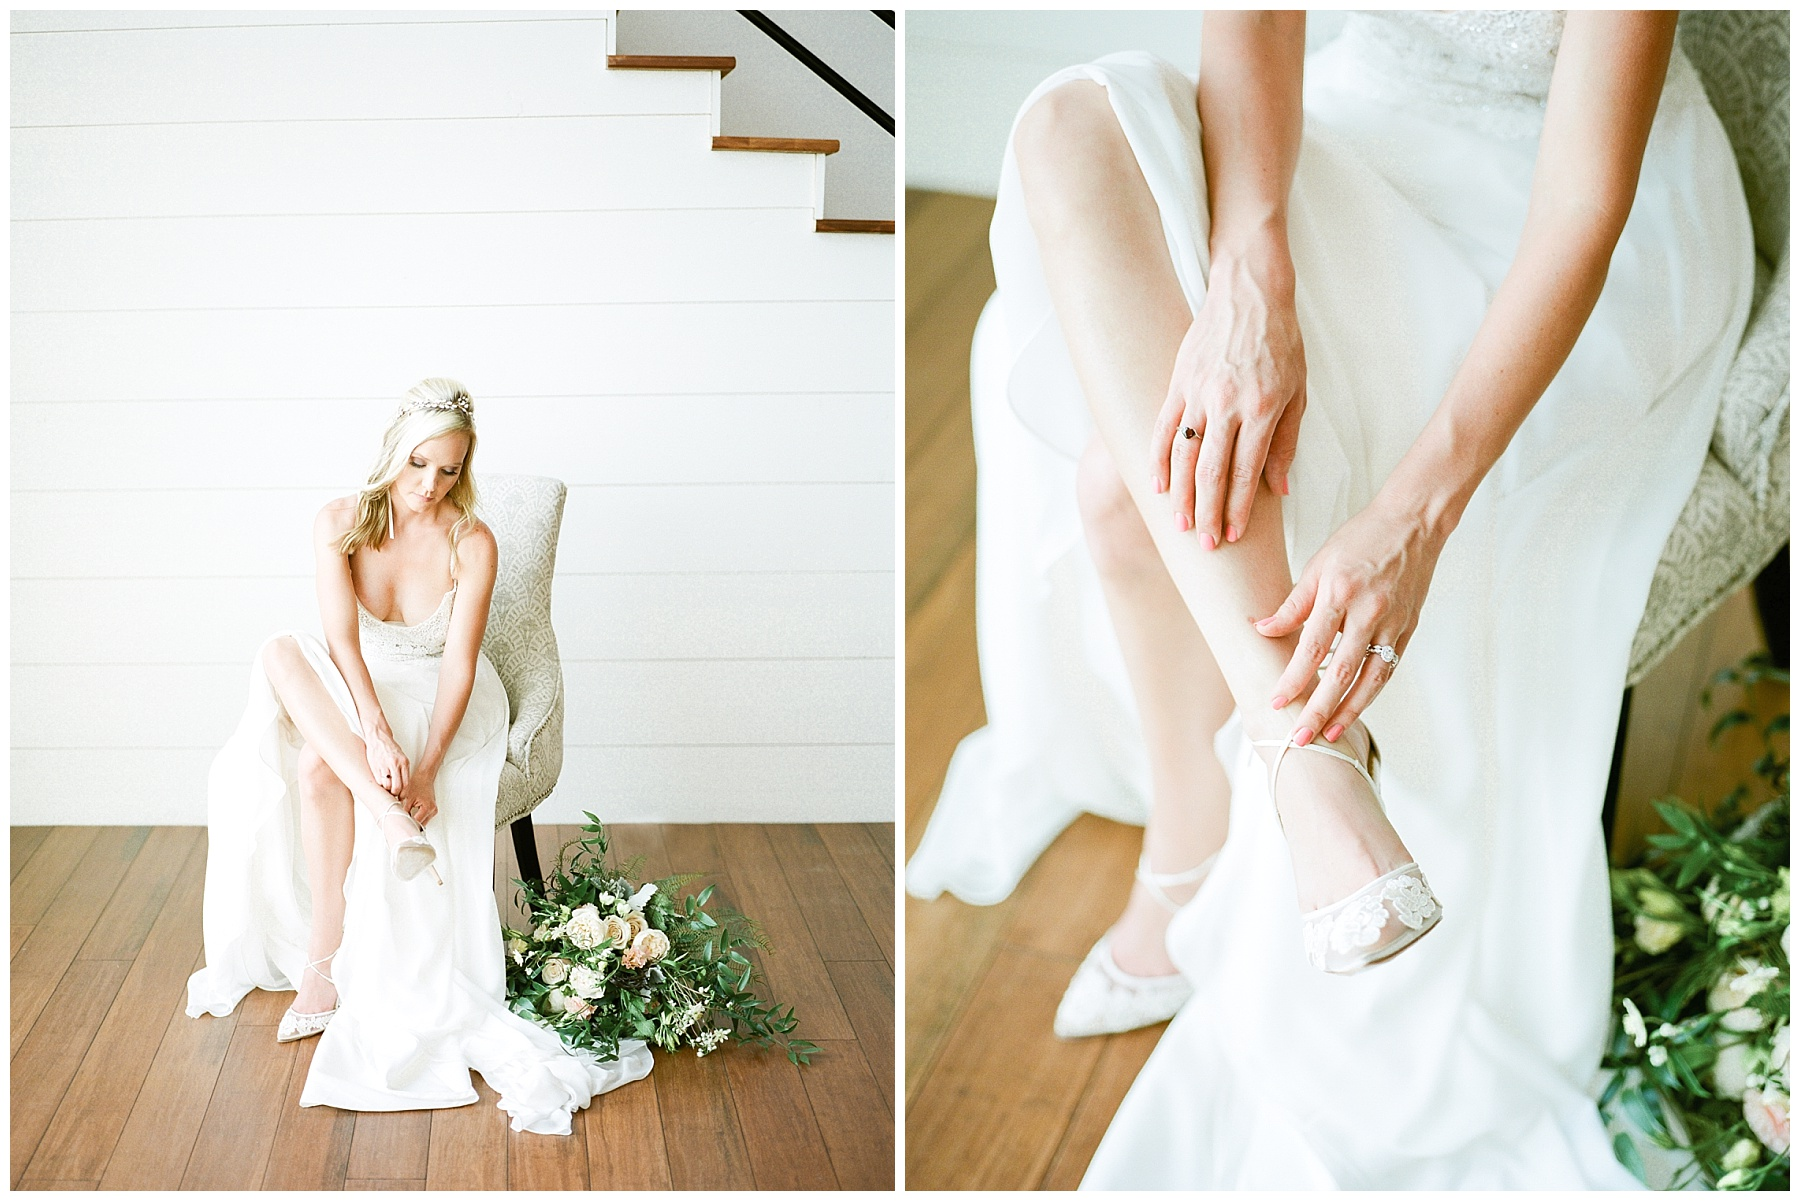 Textural Organic Wedding in All White Venue by Kelsi Kliethermes Wedding Photographer - Missouri, Midwest, and Destinations_0022.jpg